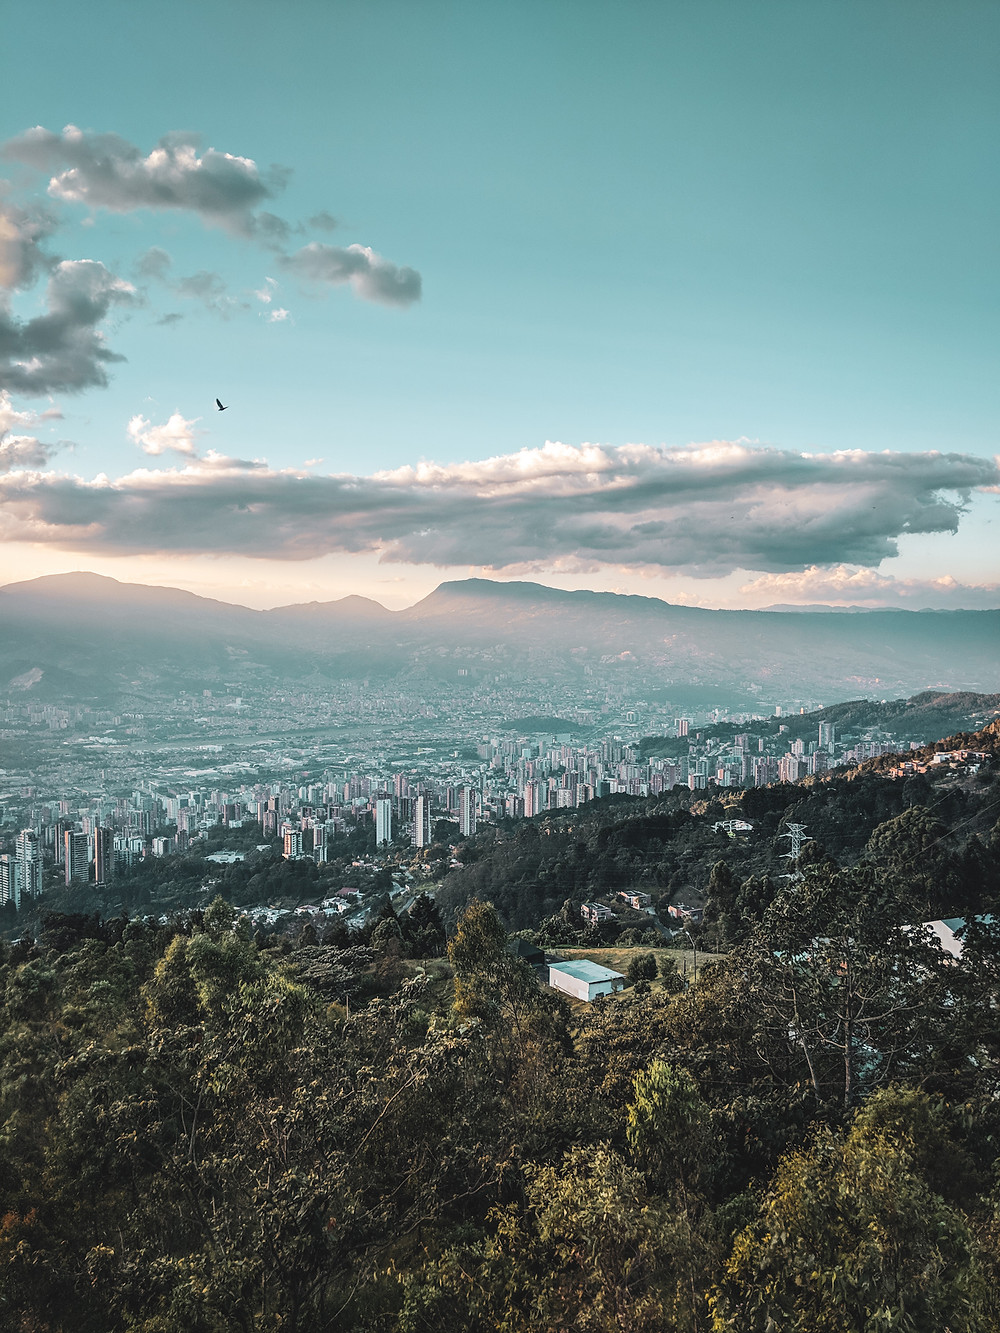 A view of Medellín from an overlook.